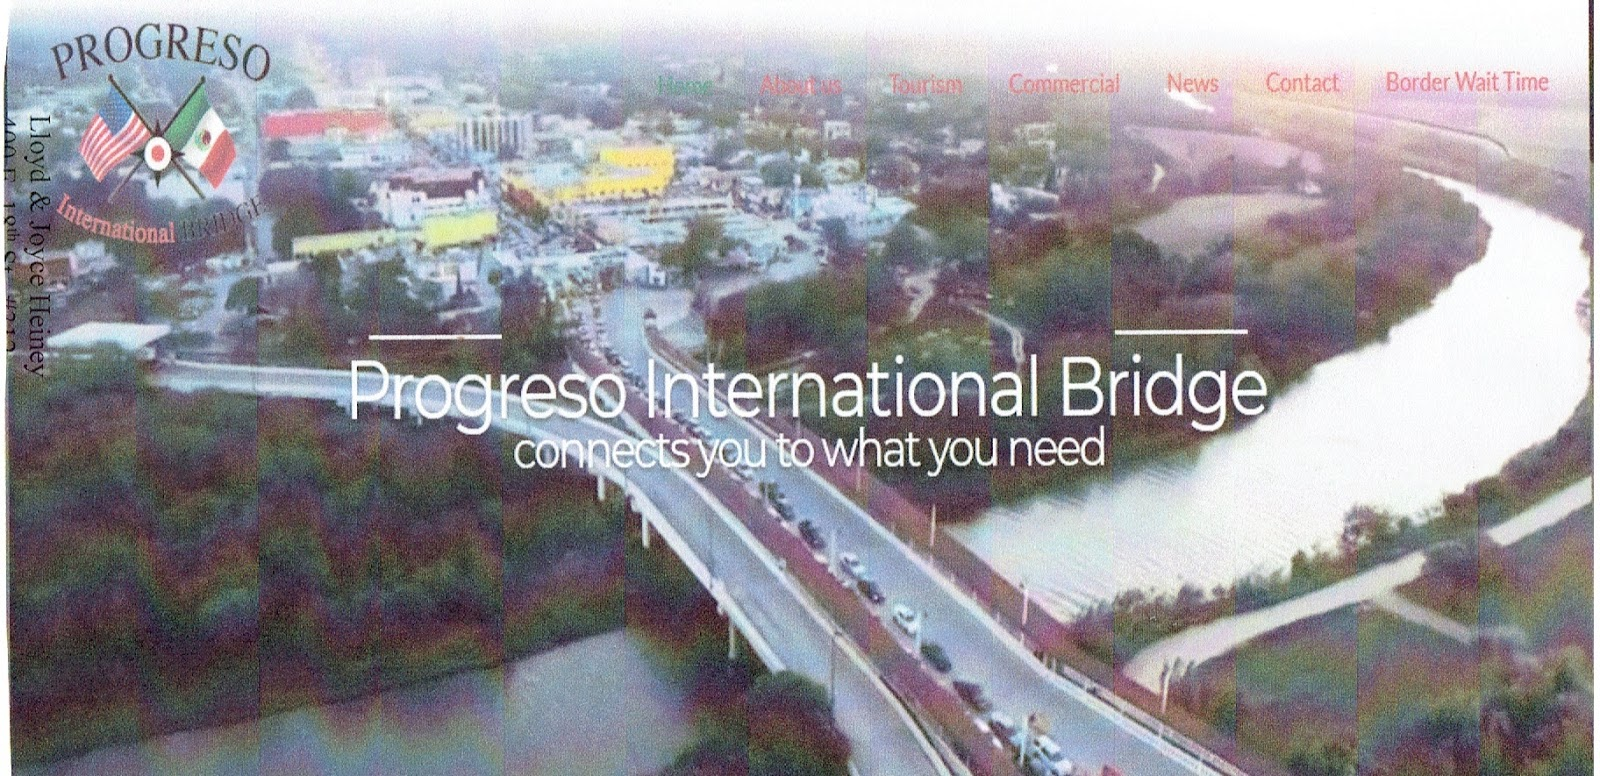 Mission Mexico: PROGRESO INTERNATIONAL BRIDGE